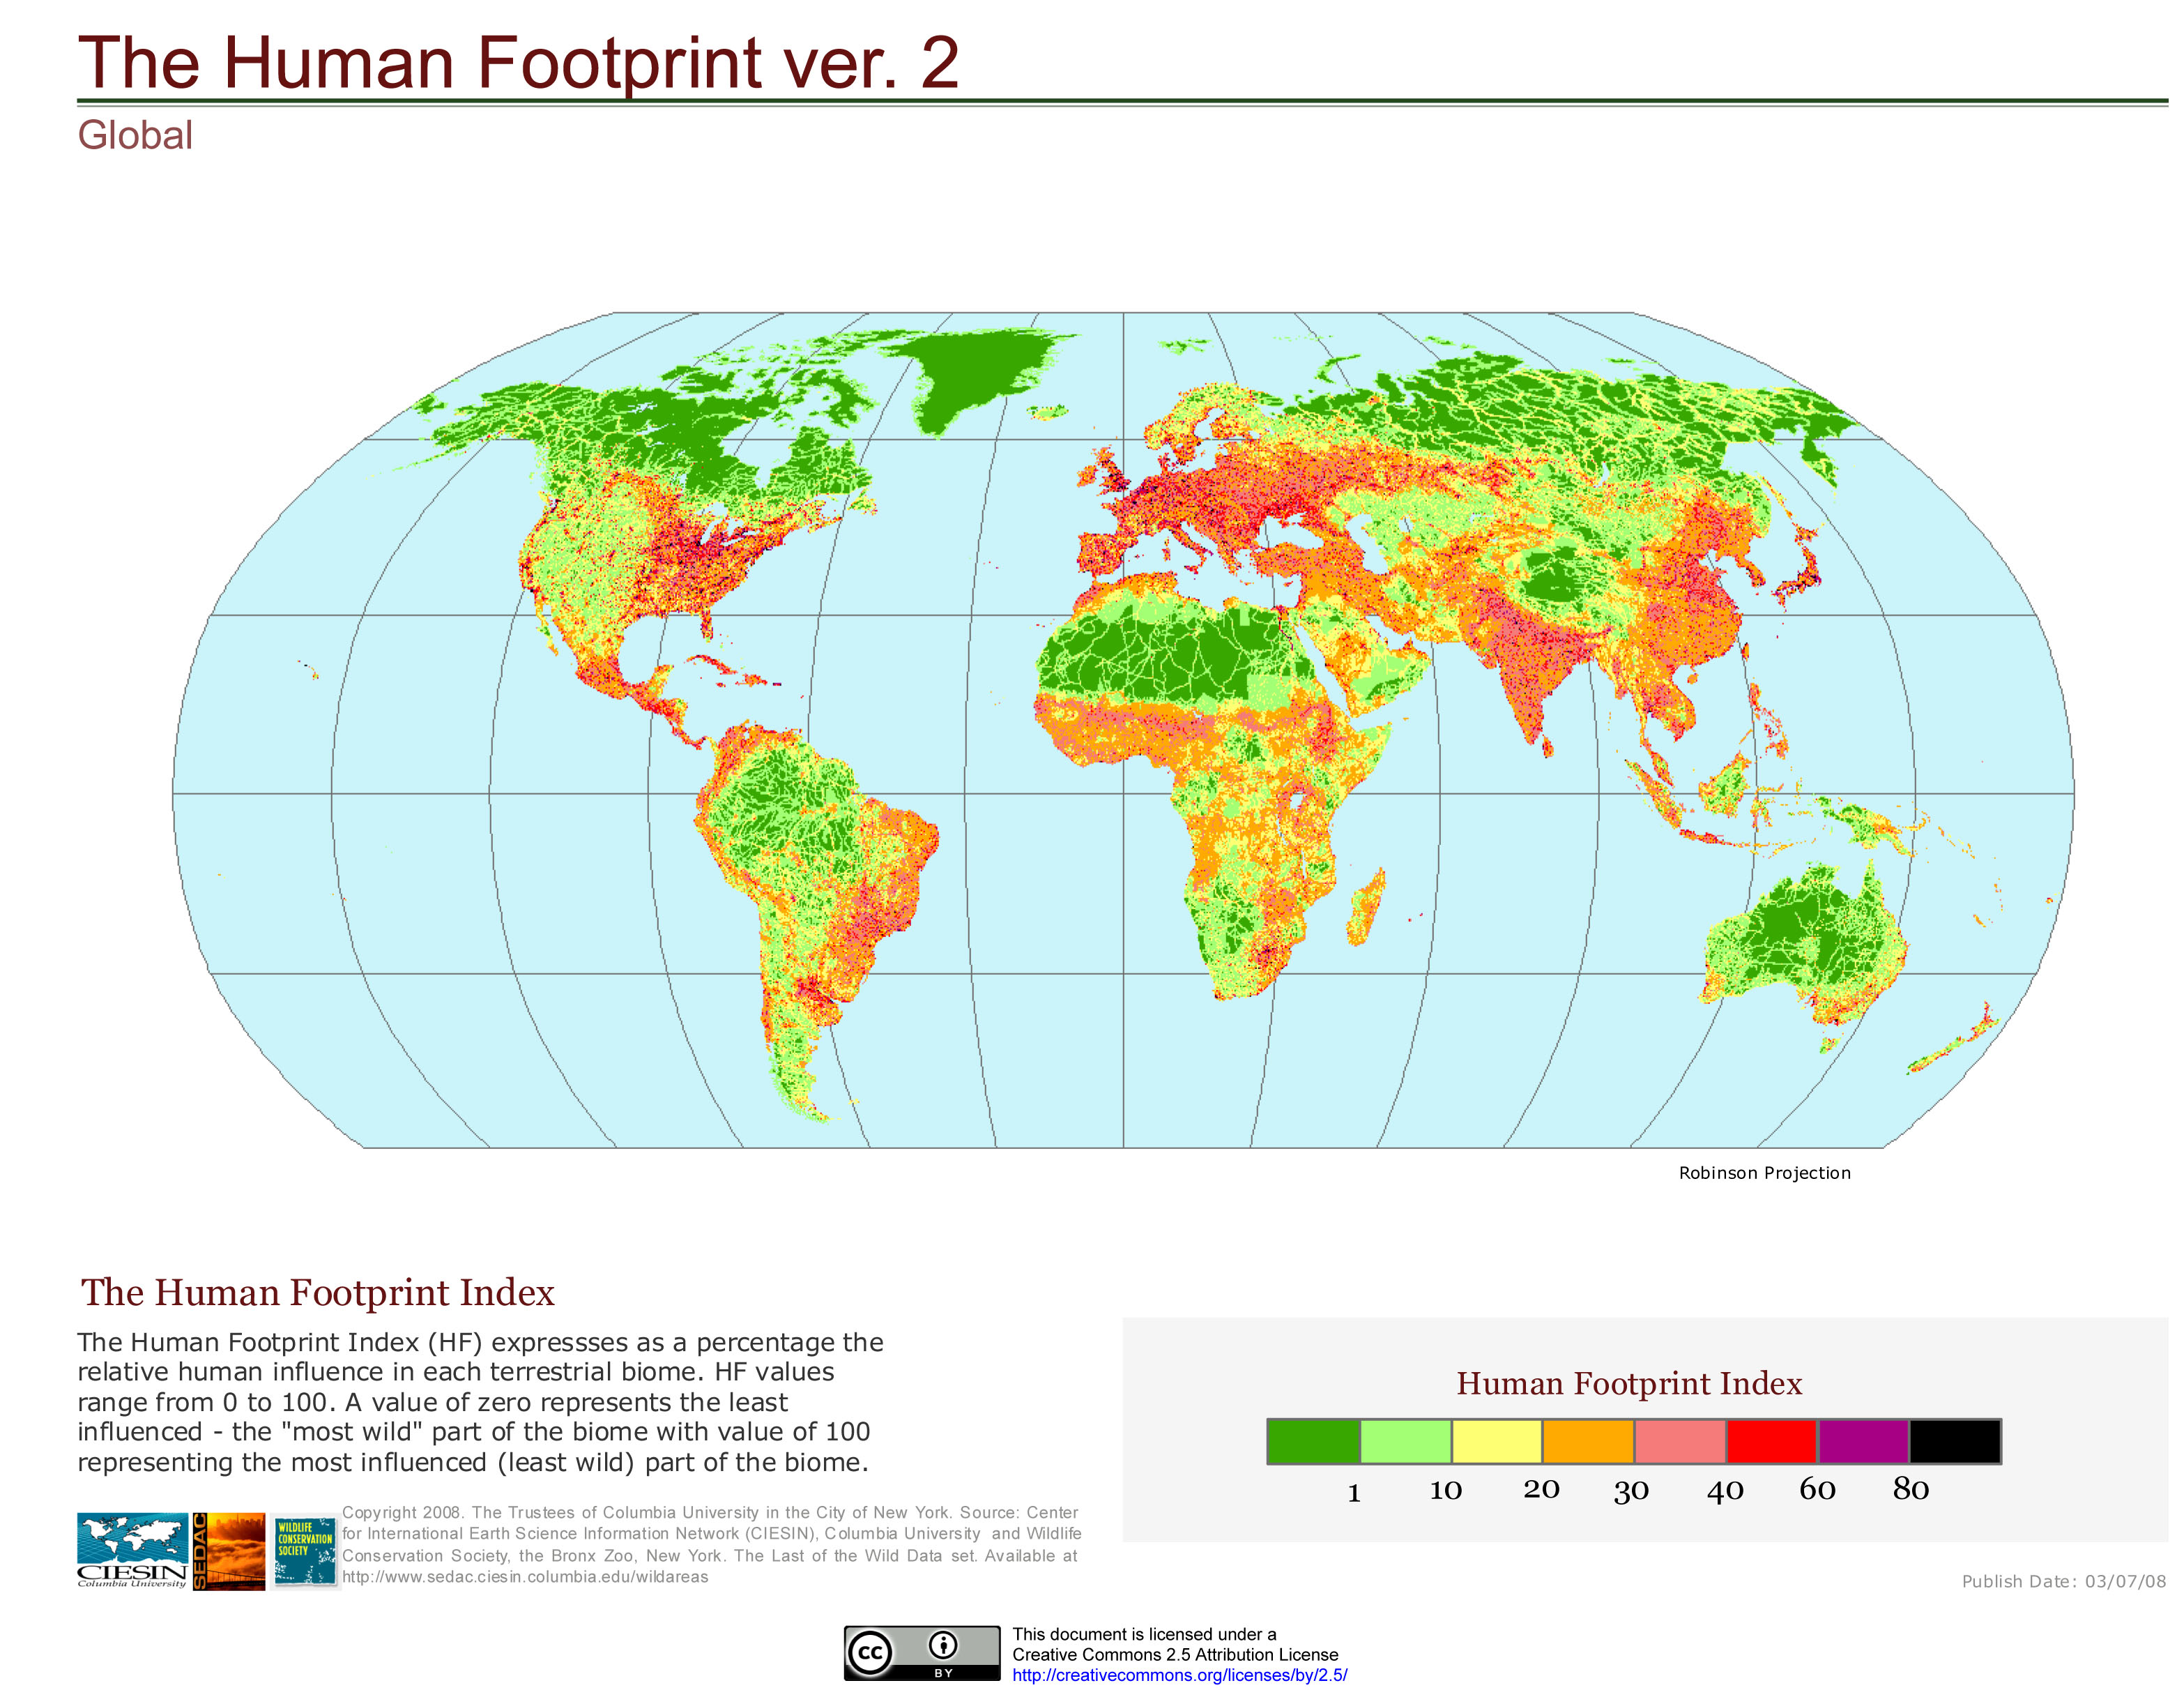 Worksheets Ecological Footprint Worksheet ecological footprints science for understanding the peoples human footprint nasa 4